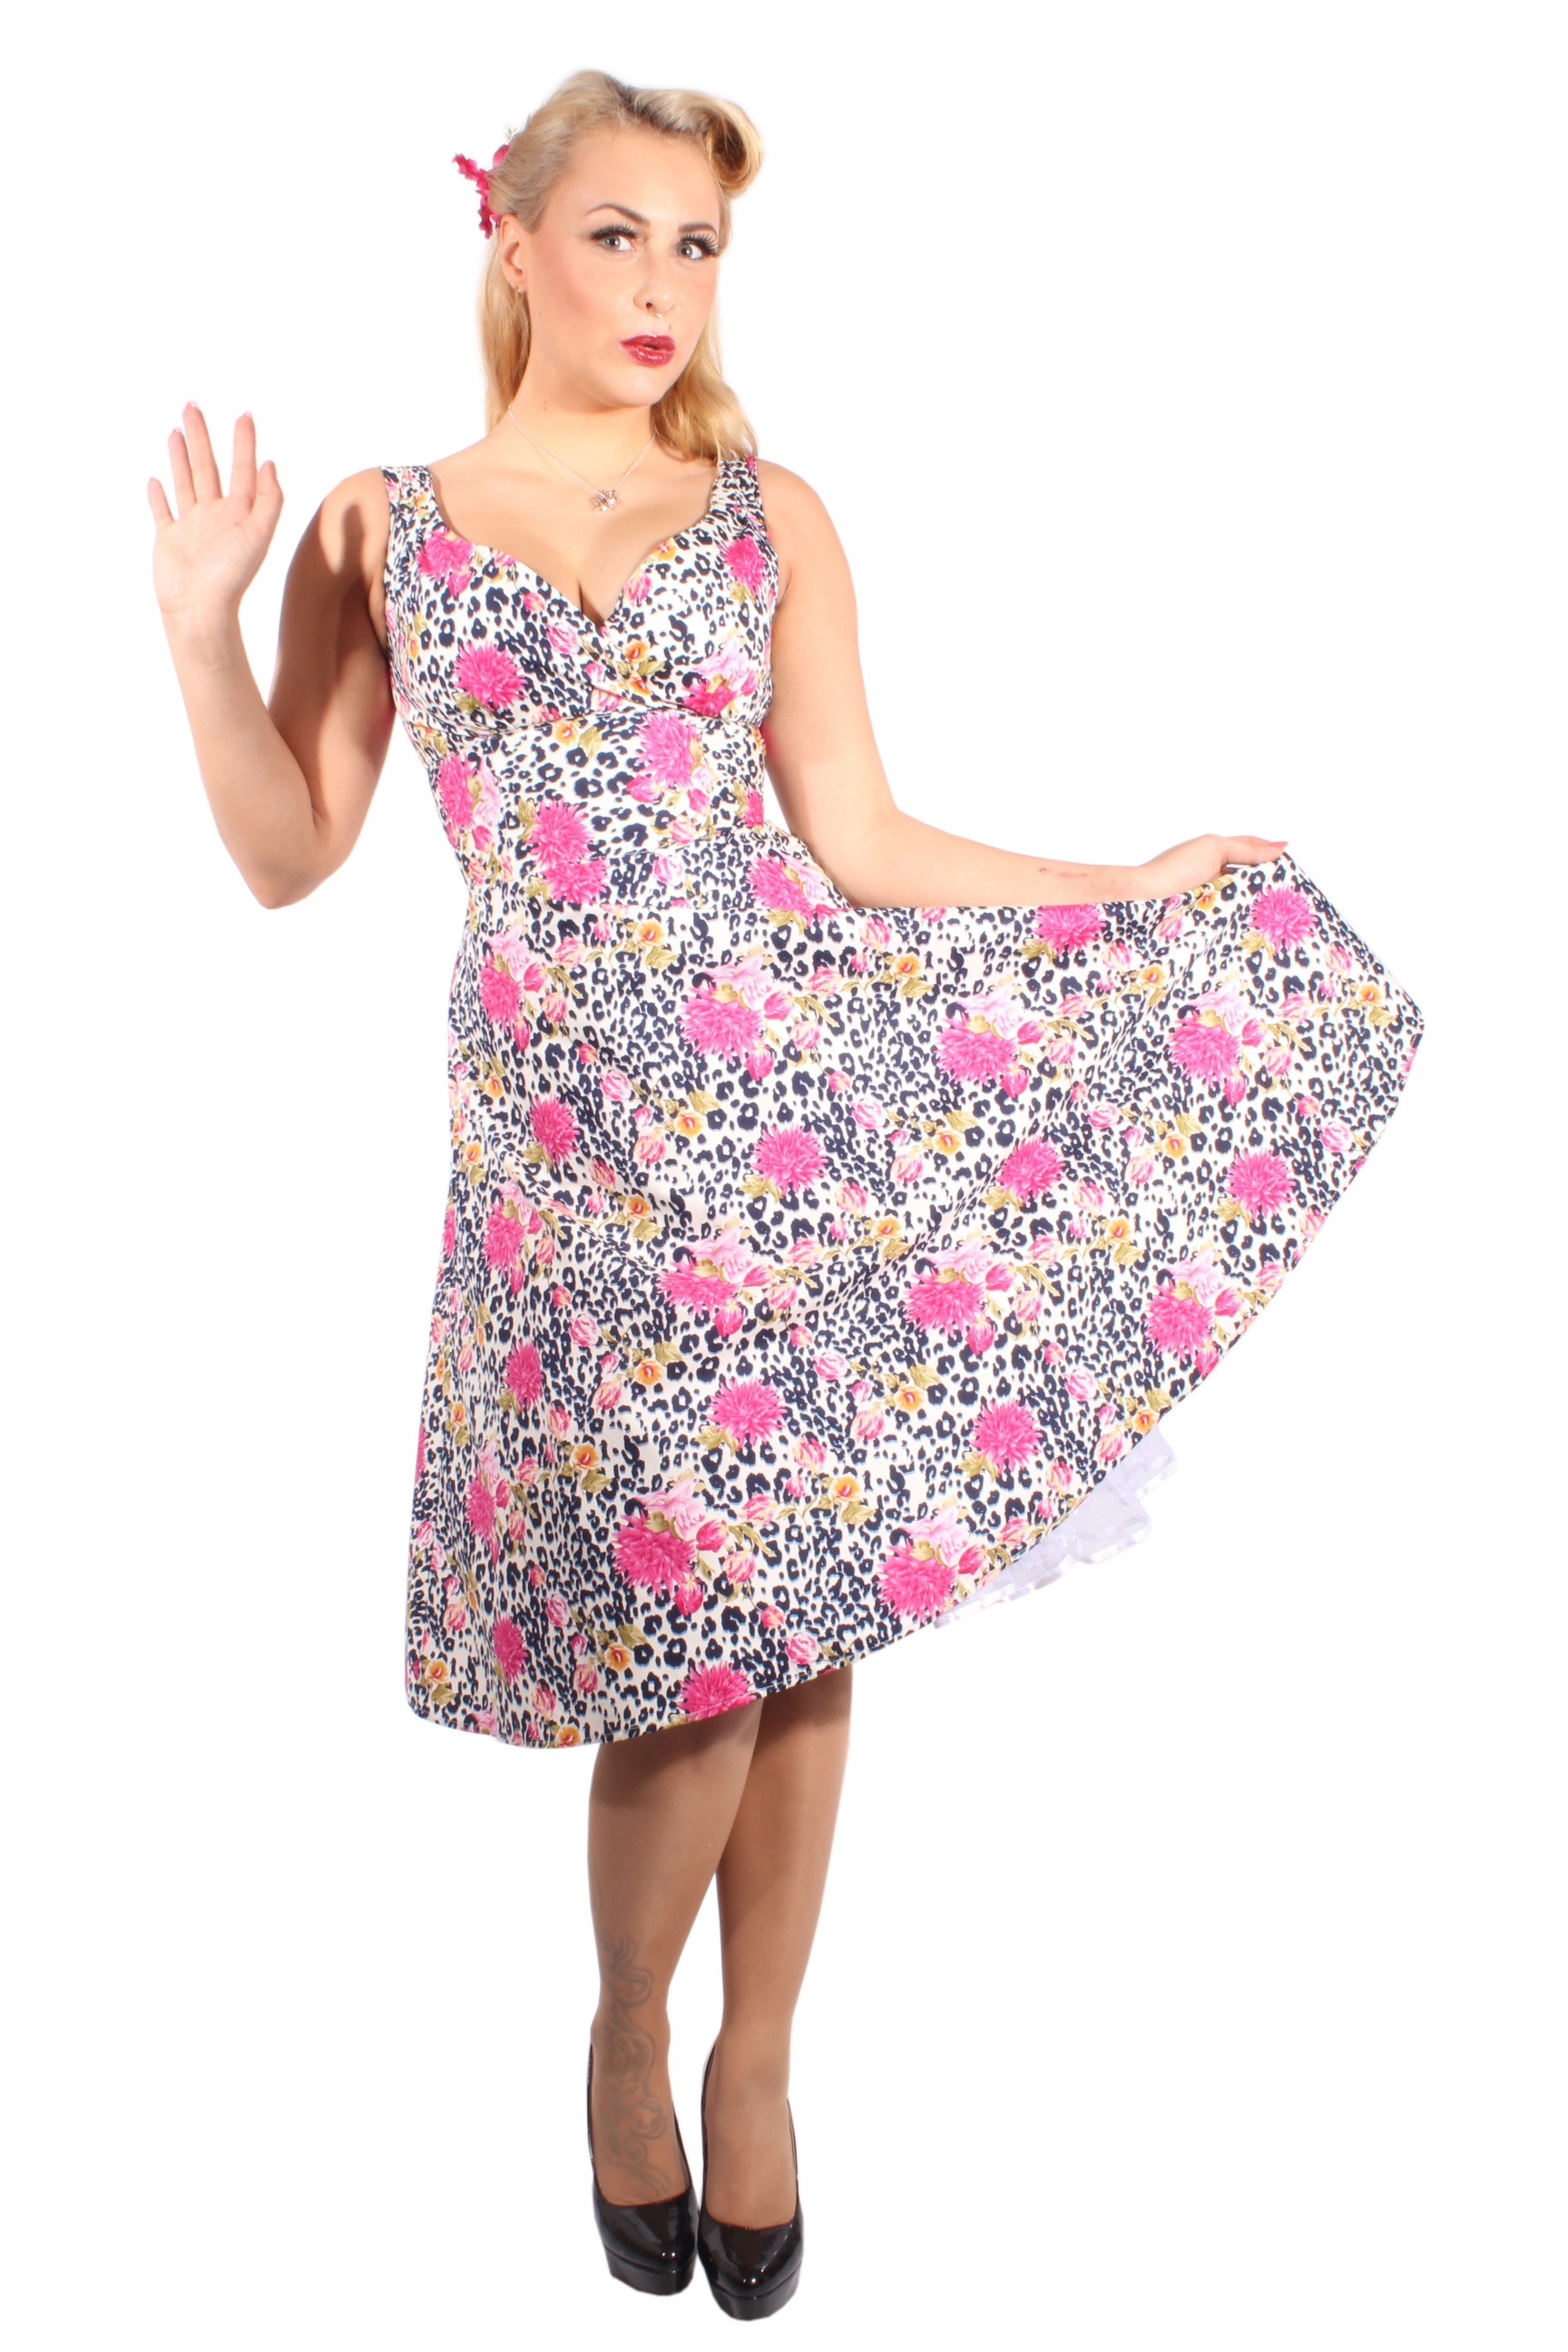 Leoparden rockabilly Rosen SWING Leo Flower Kleid Petticoatkleid